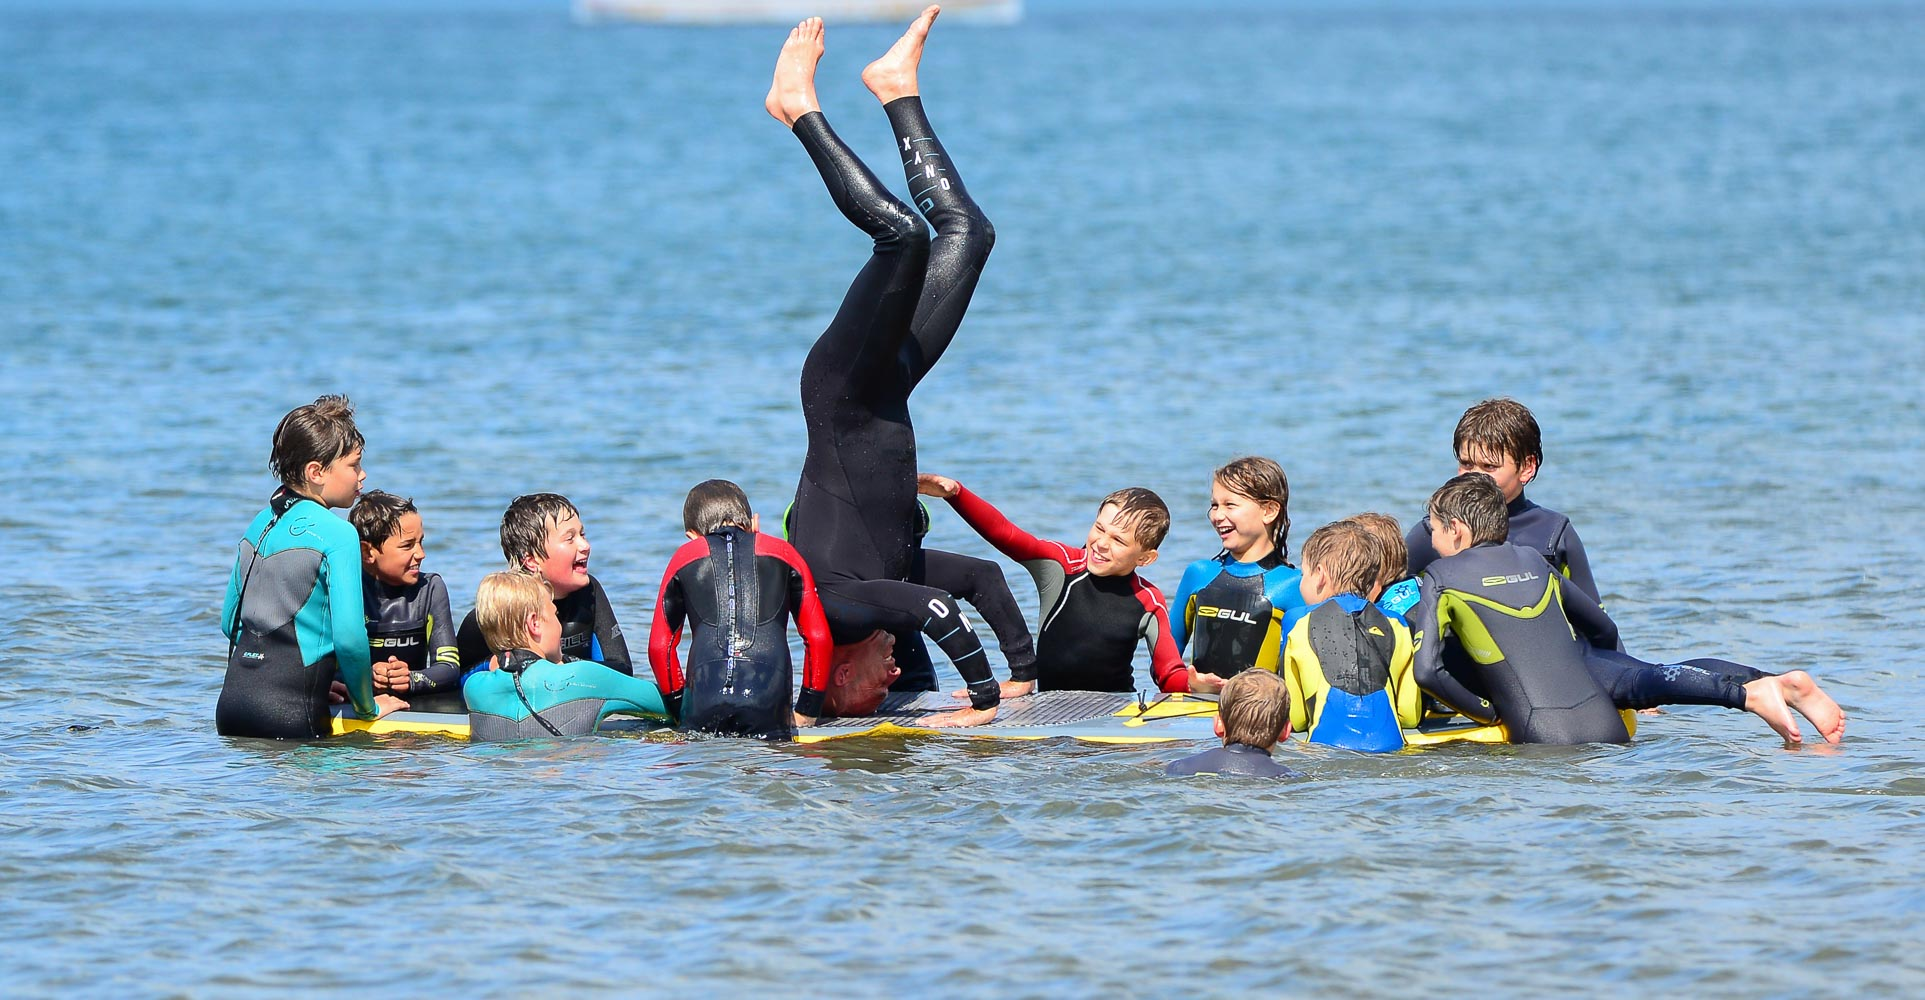 Kids Surf Club, Instructor doing a handstand on a surfboard